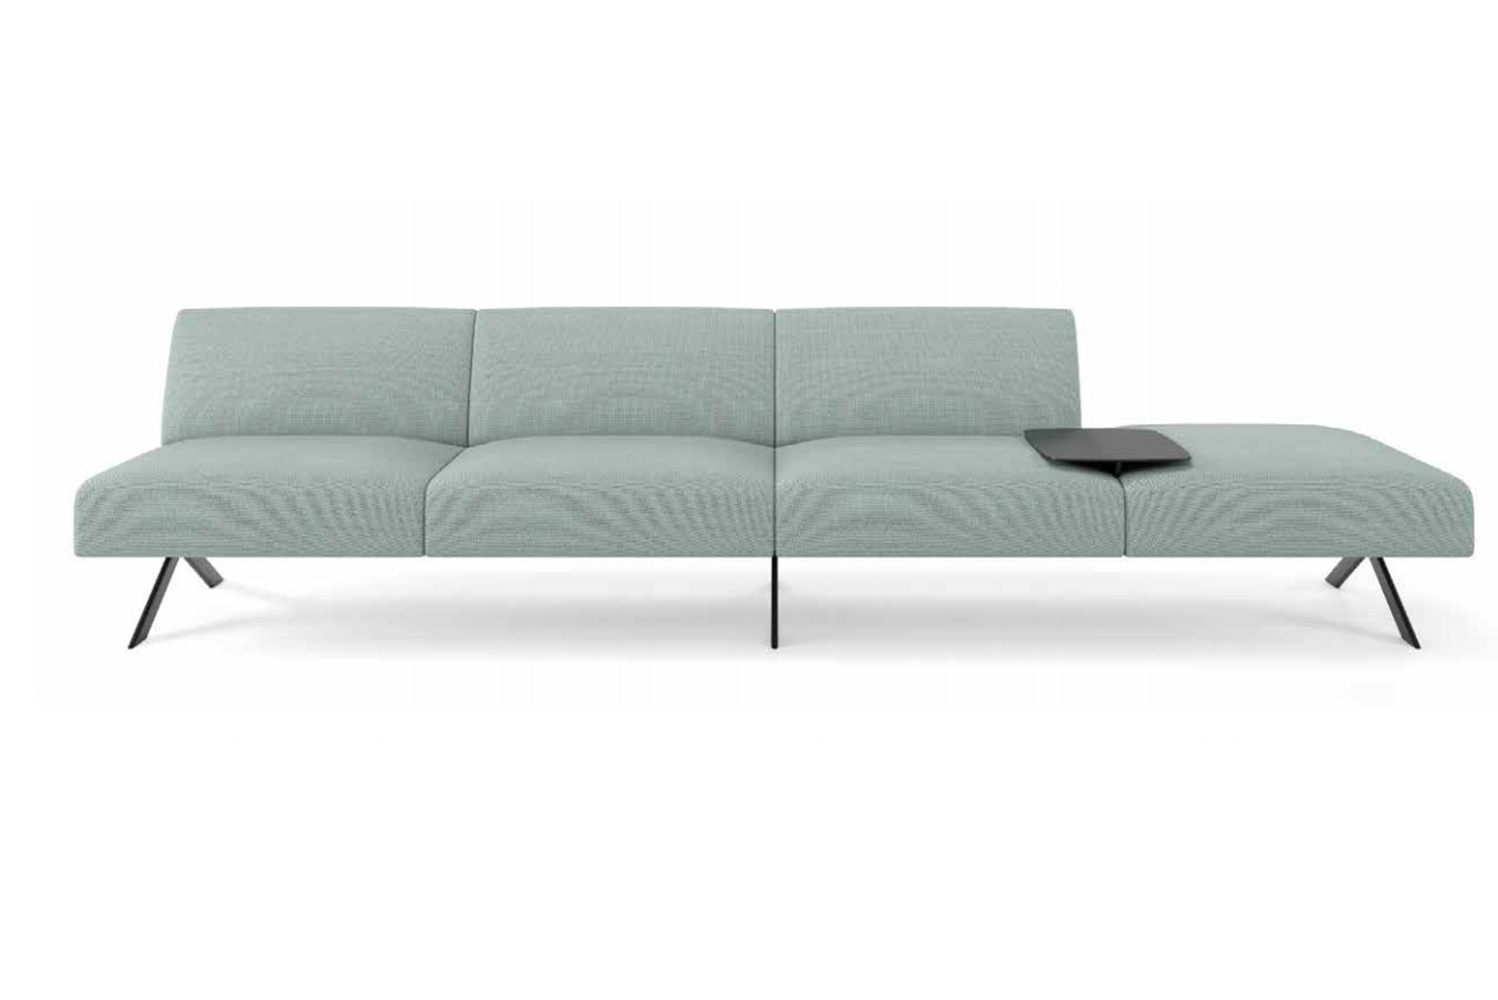 With Sistema, one can build anything from a classic, high-backed sofa, armless bench, or social sectional in any length.